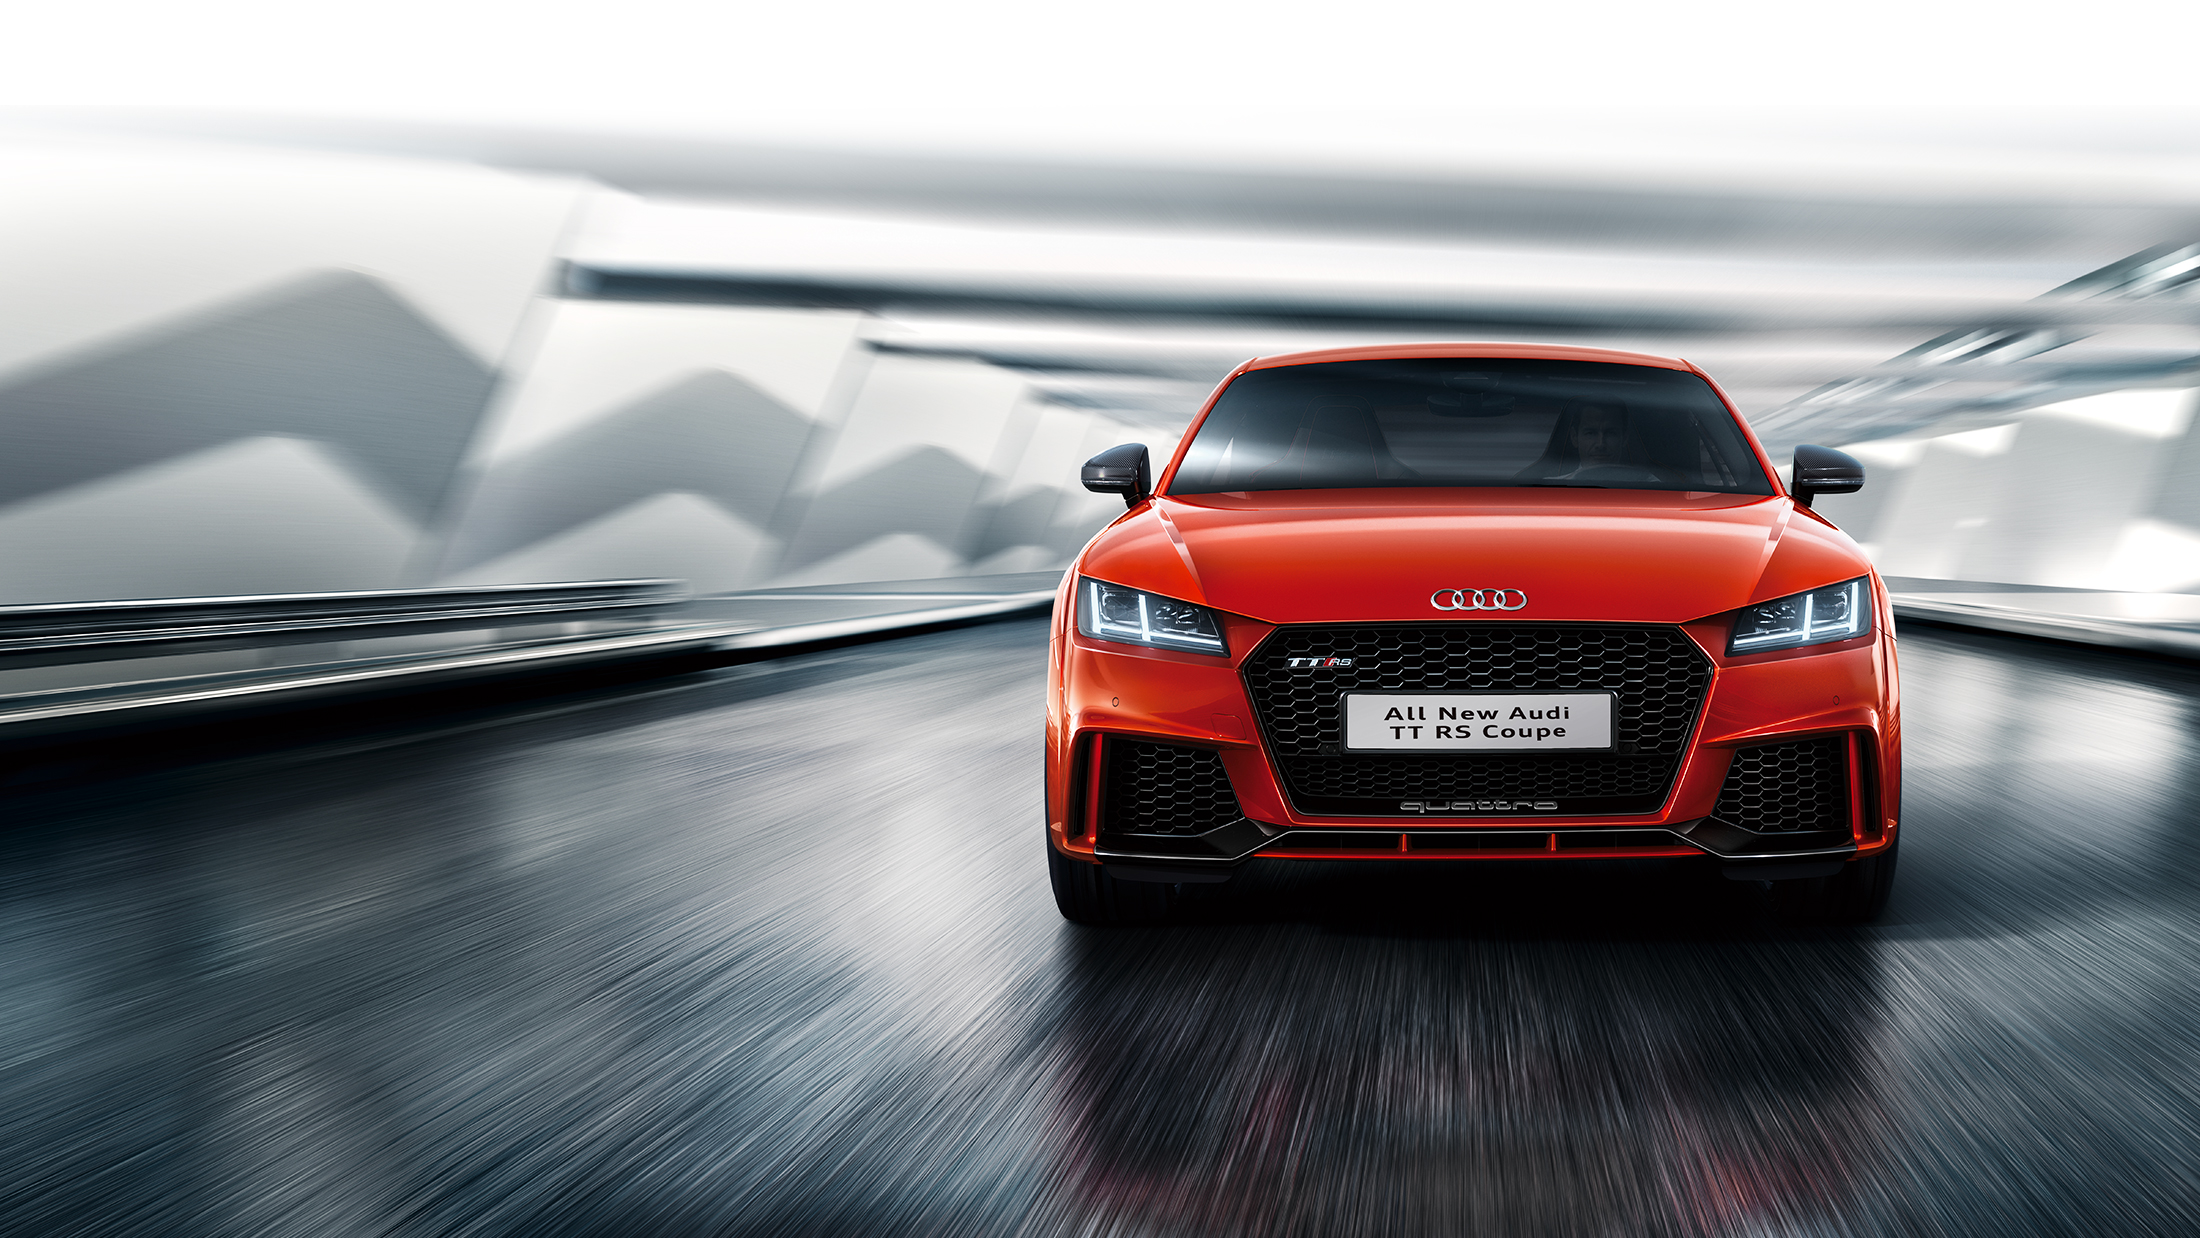 ttrs-coupe-gallery-03.jpg